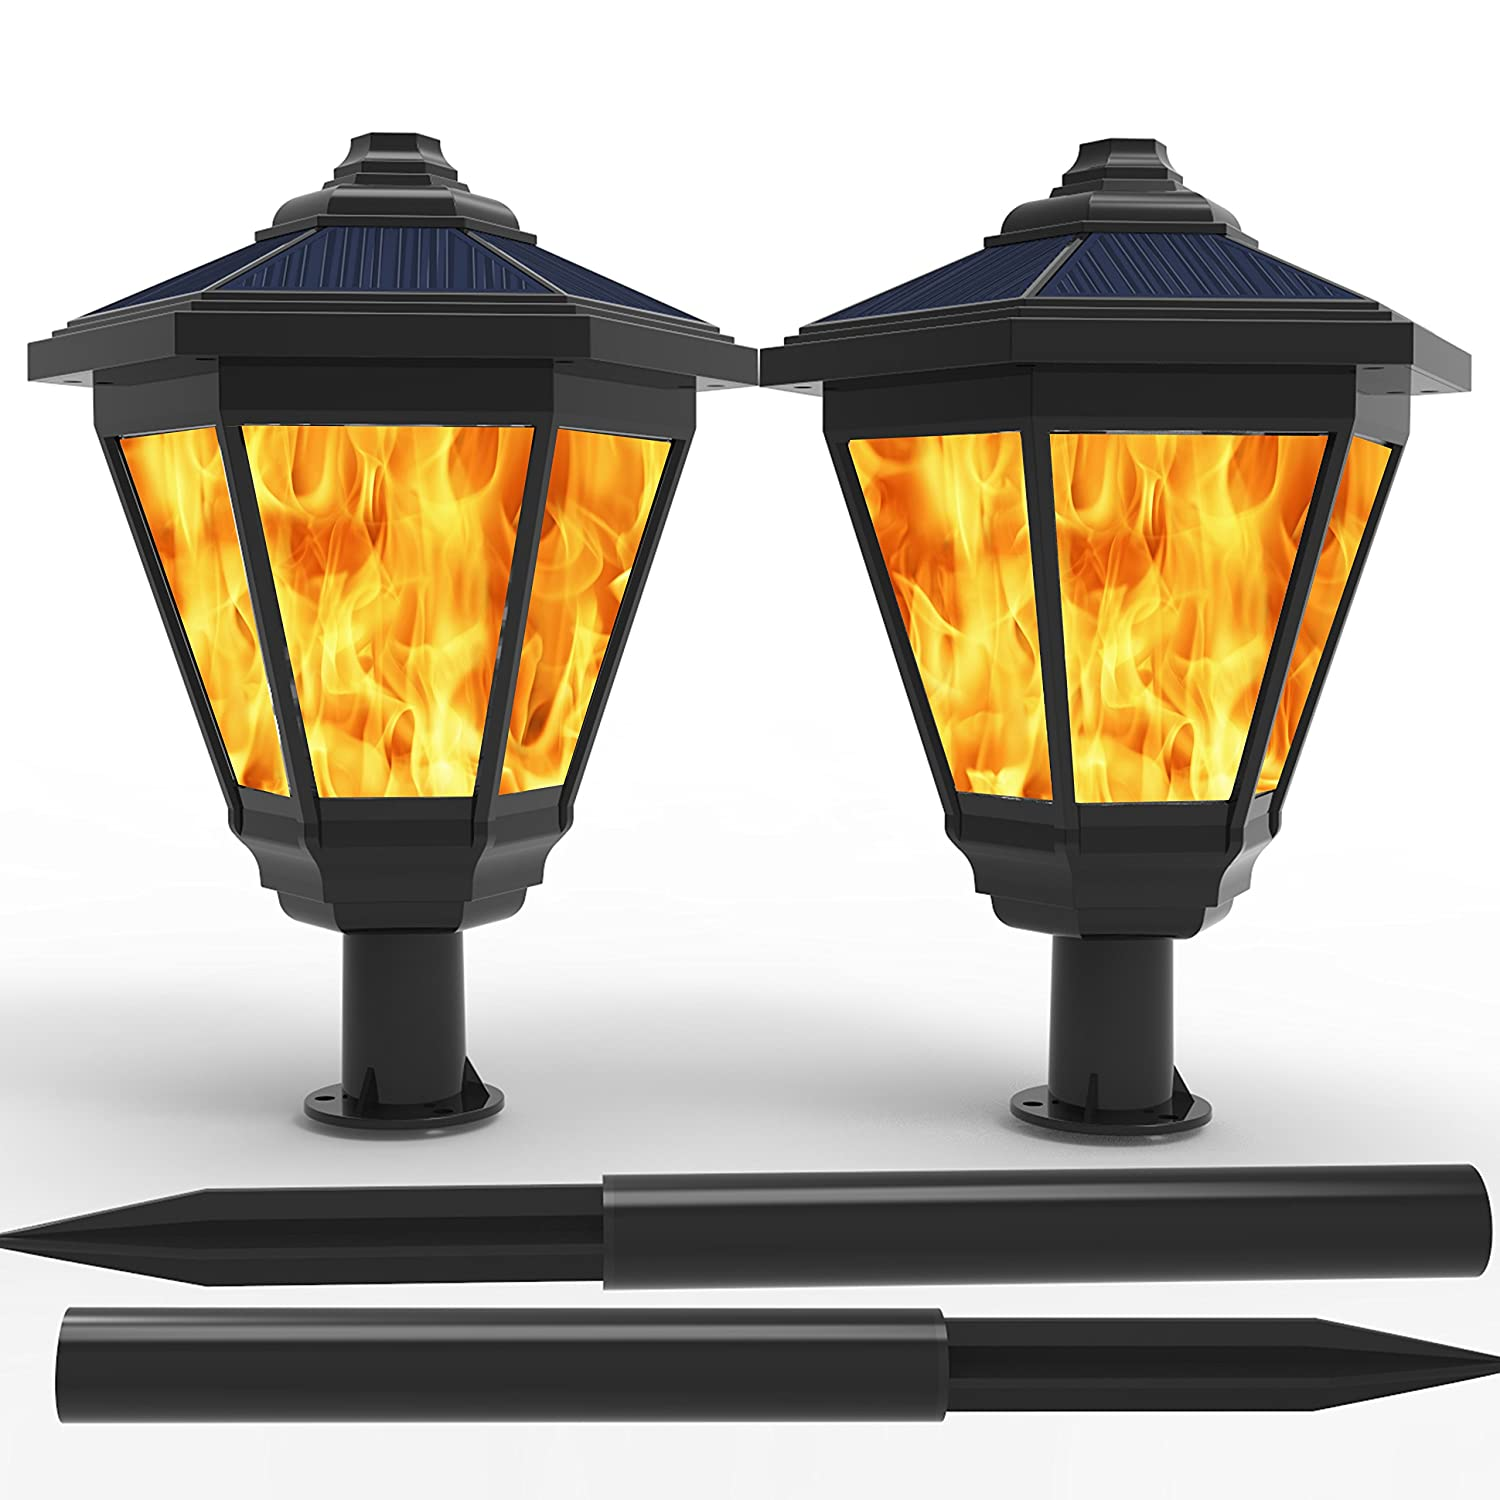 LAMPAT Solar Lights Waterproof Flickering Flames Torches Lights Outdoor Landscape Decoration Lighting Dusk to Dawn Auto On Off Security Torch Light for Garden Patio Deck Yard Driveway 2 Pack